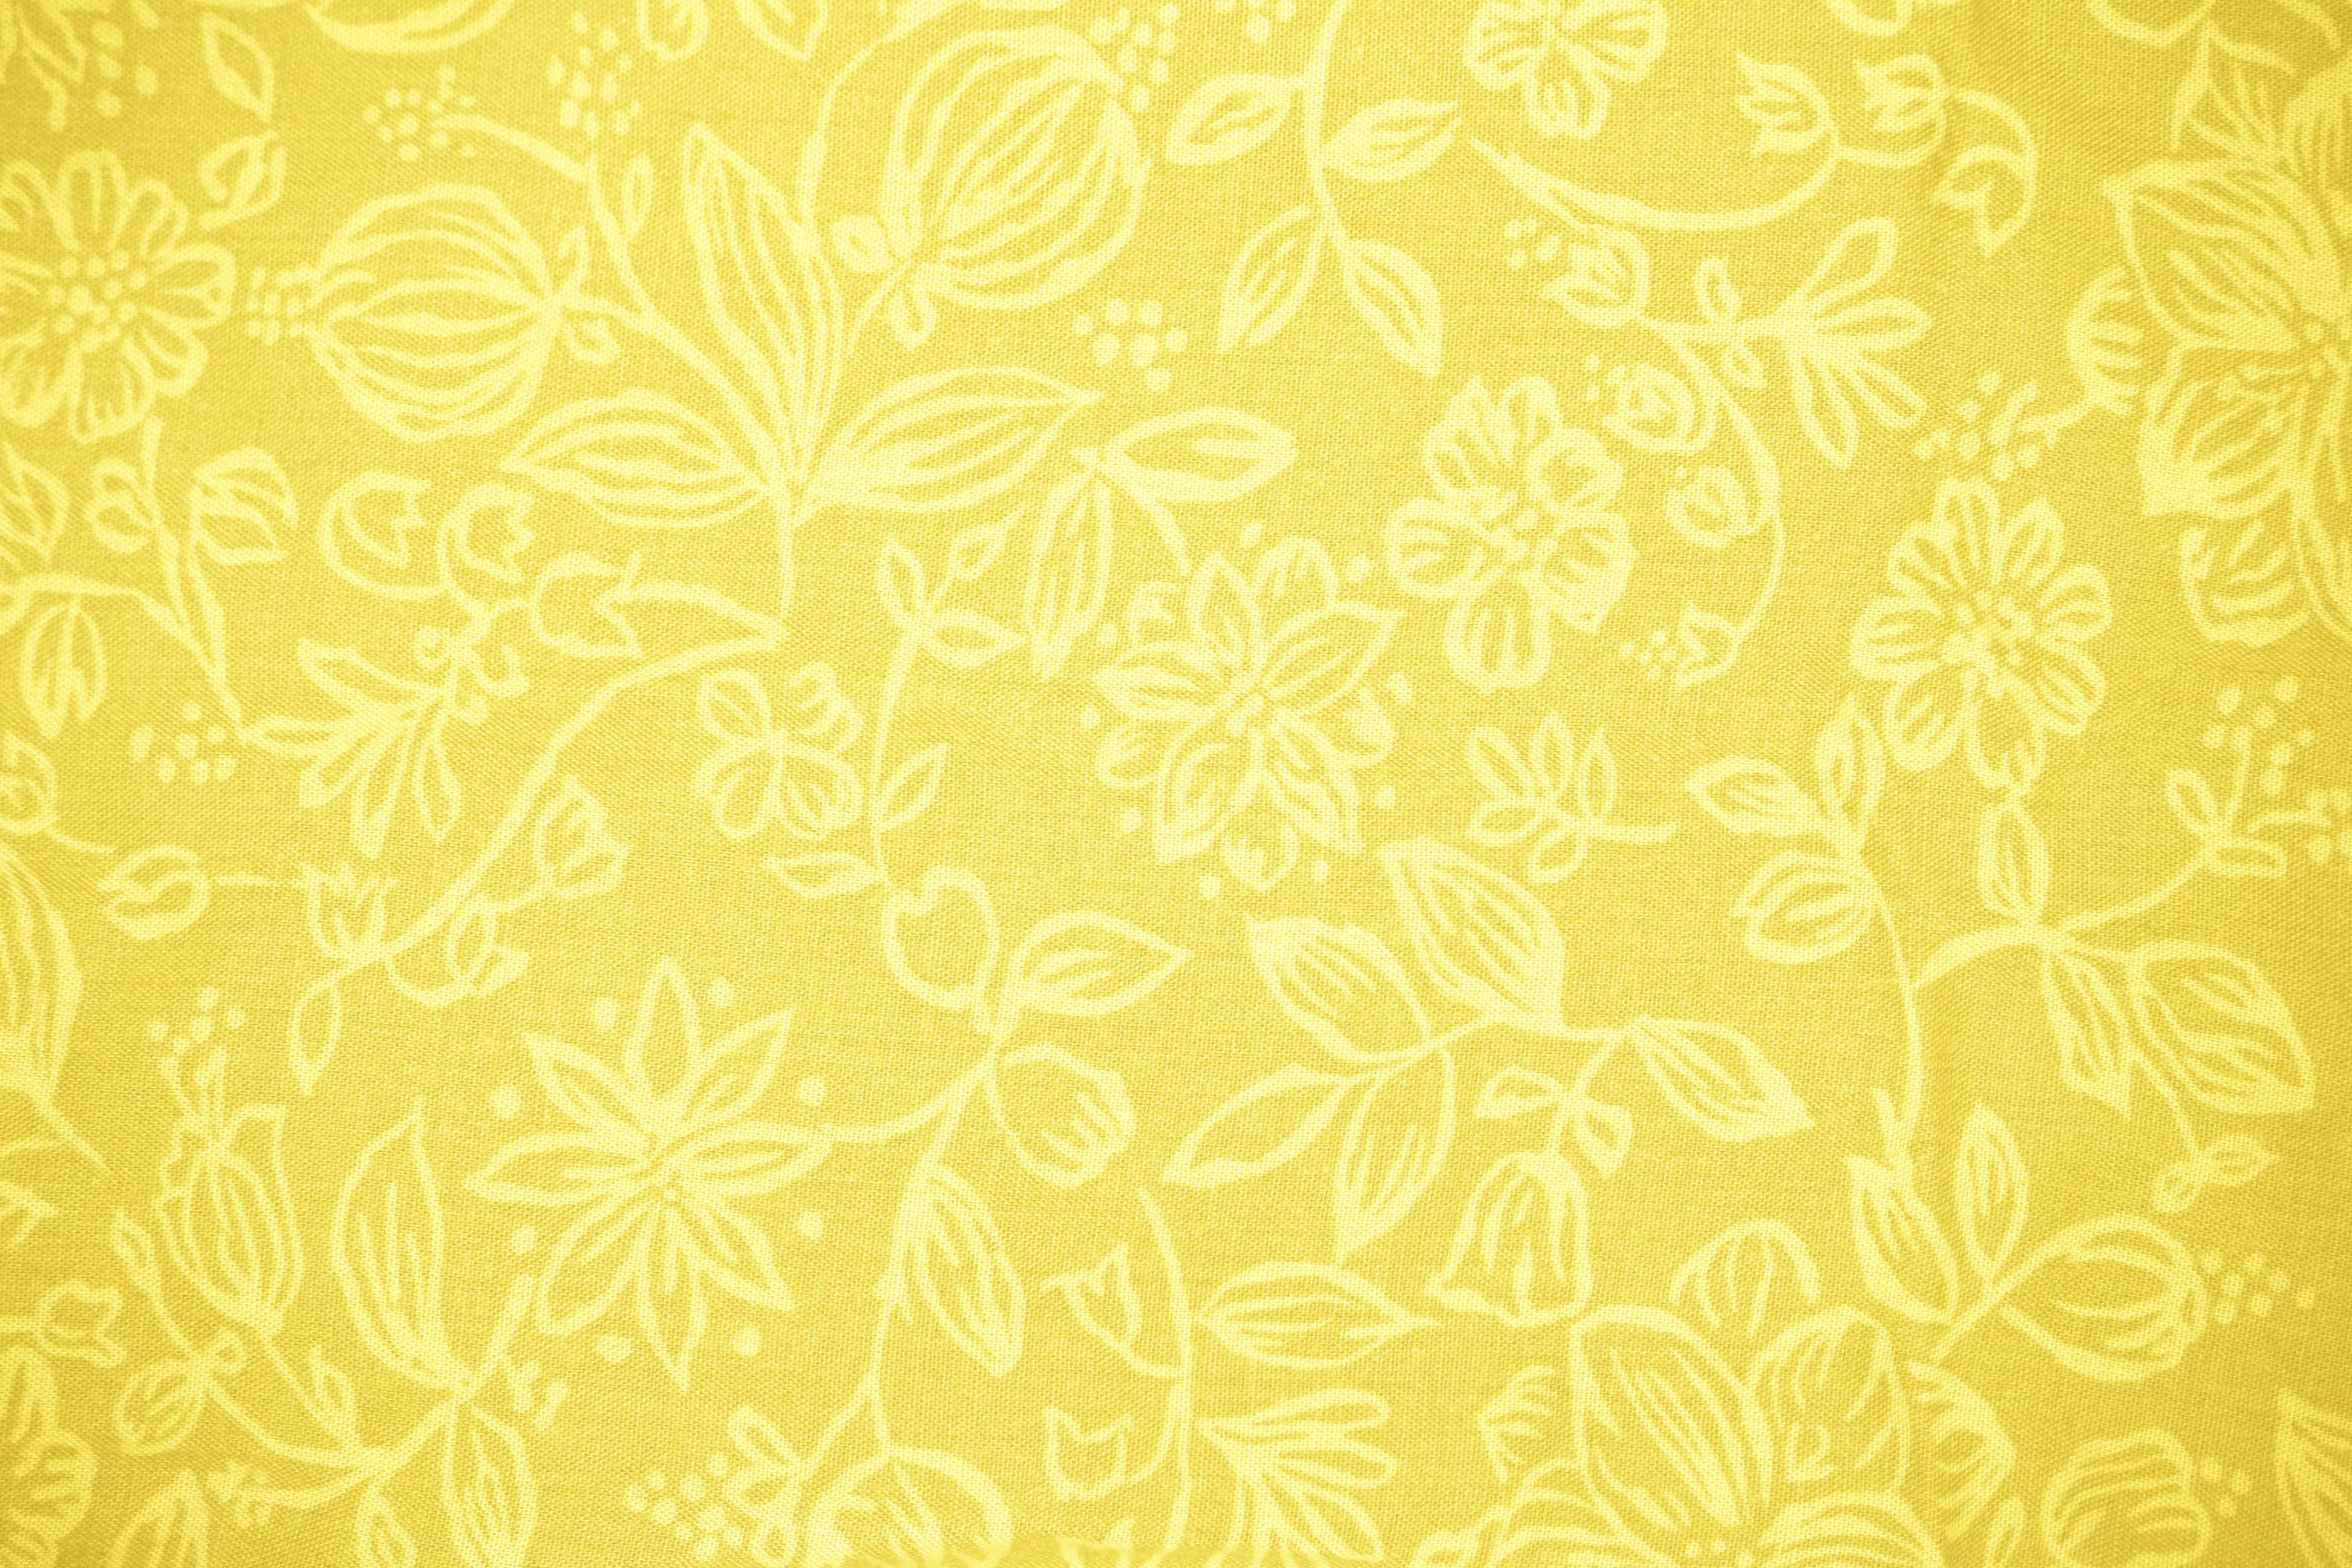 Free Download Yellow Fabric With Floral Pattern Texture High